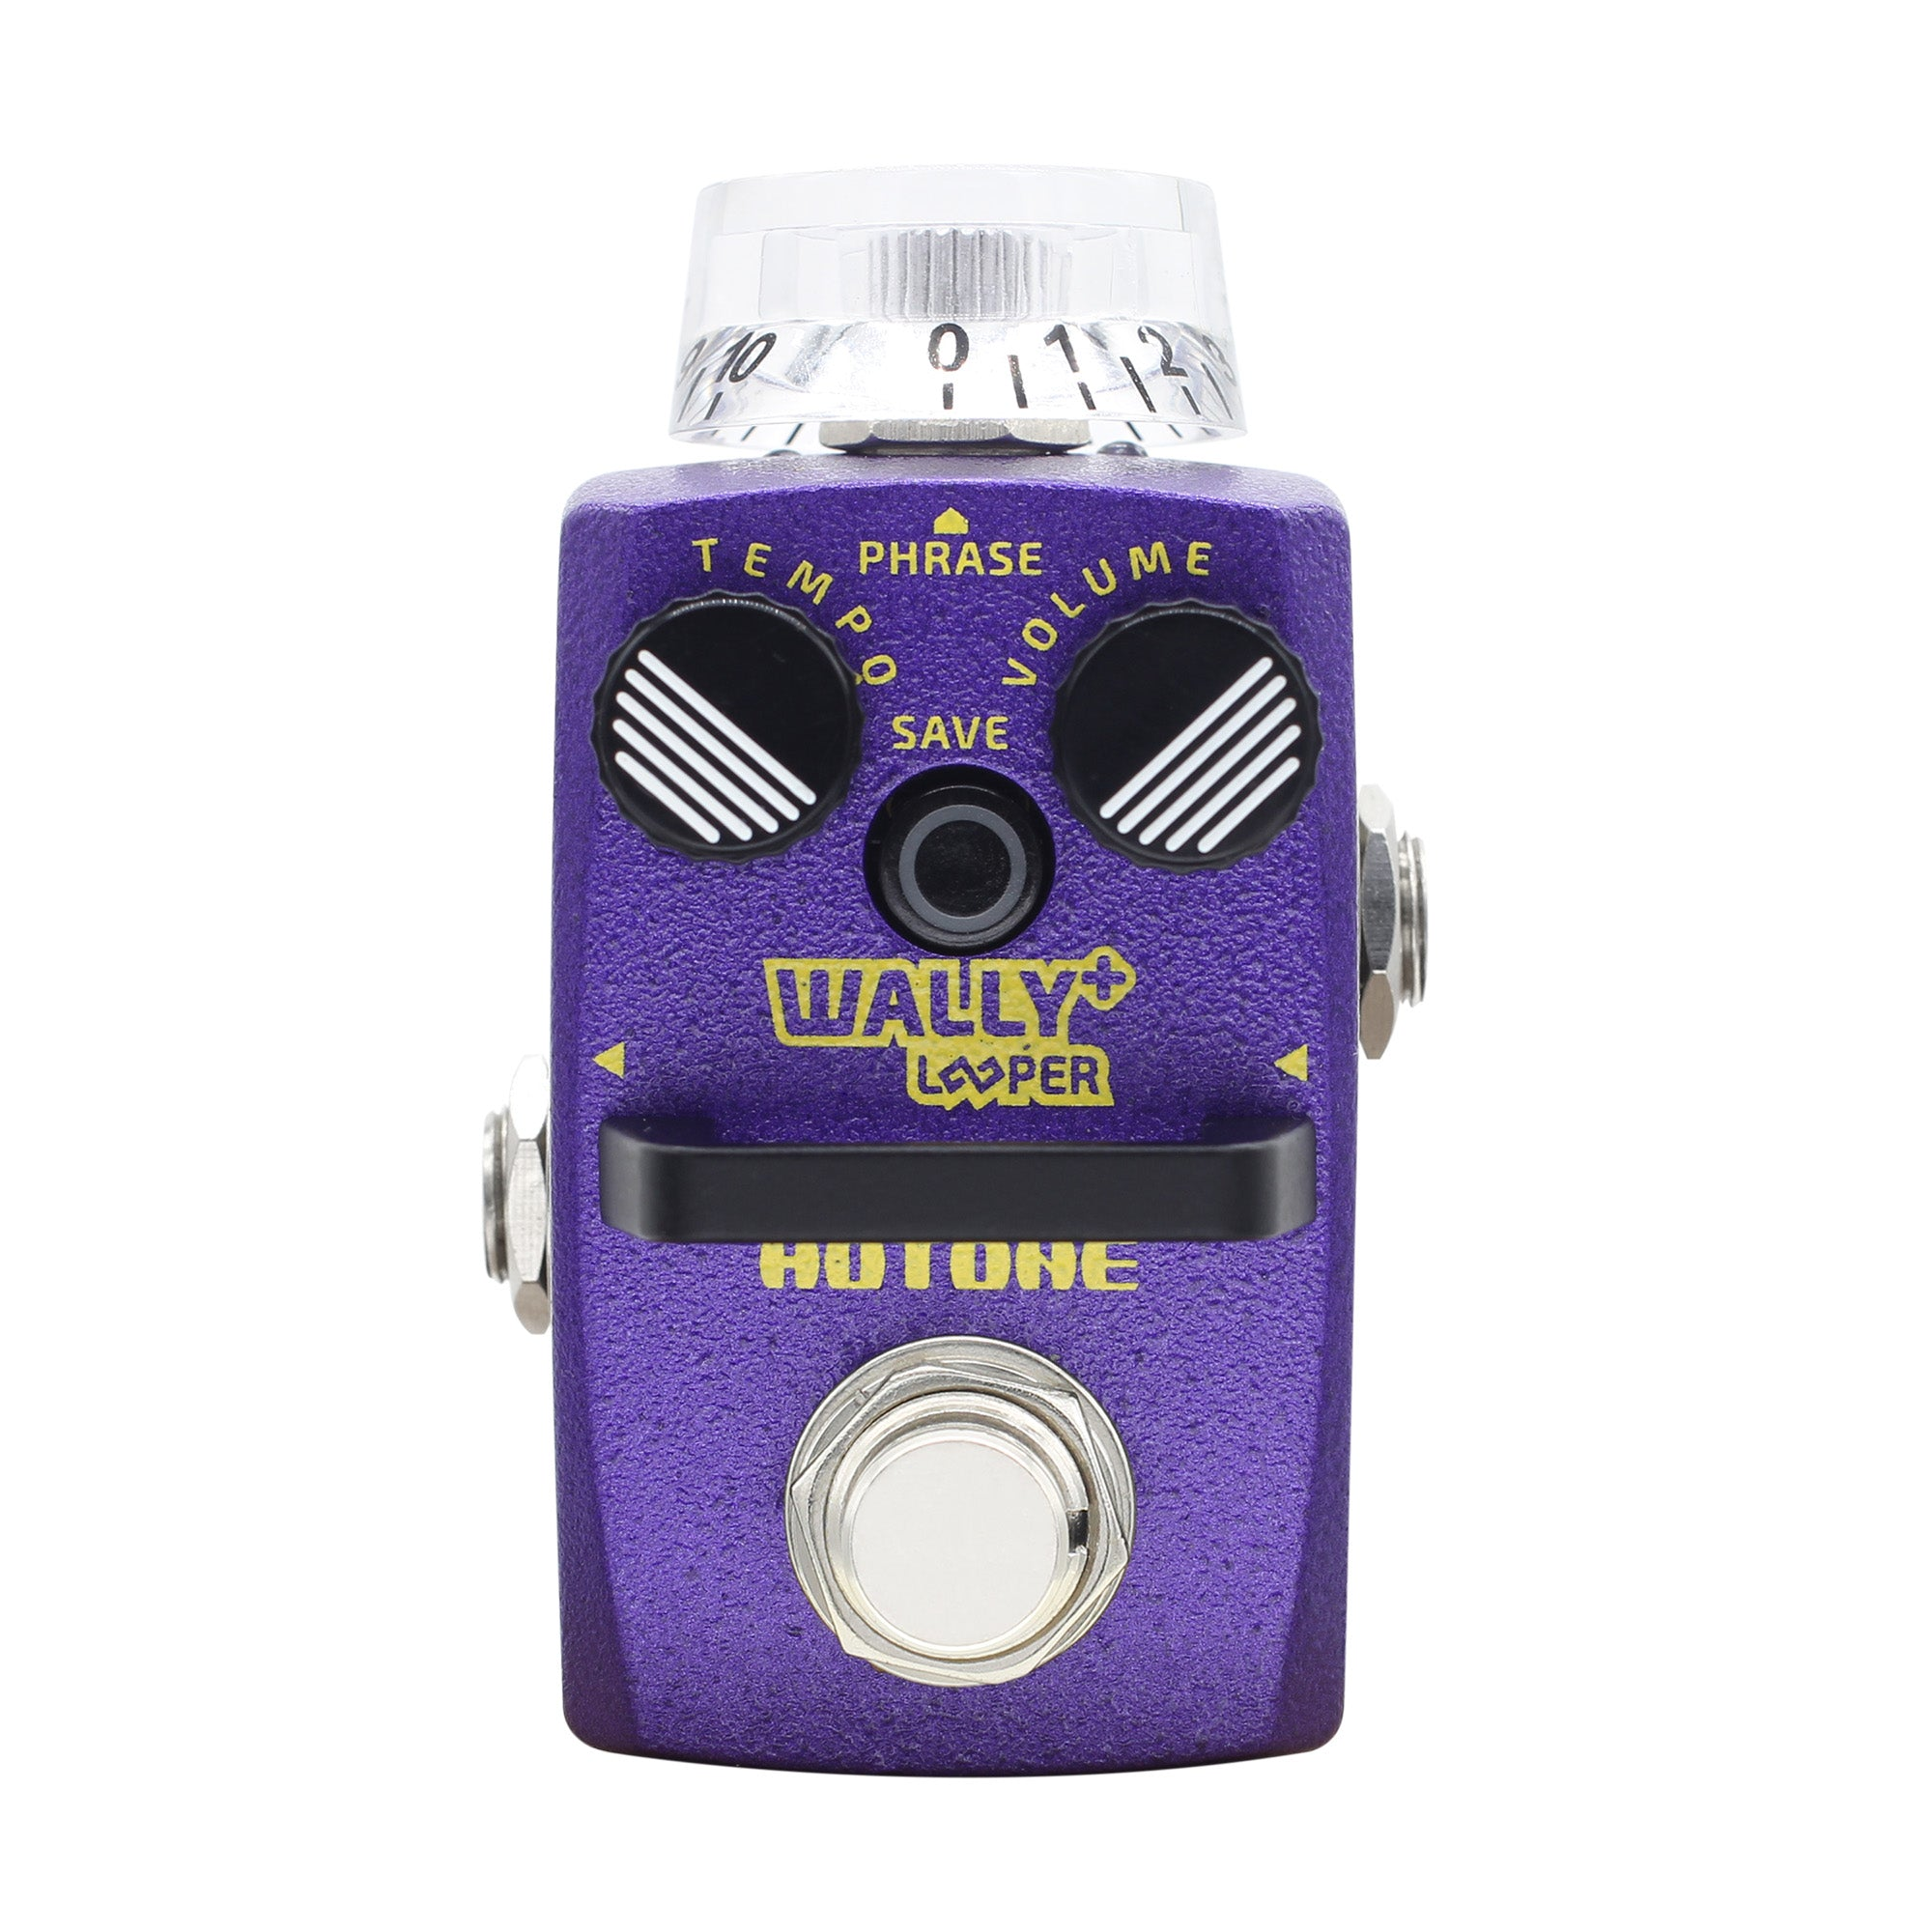 Hotone Wally+ Mini Looper Pedal